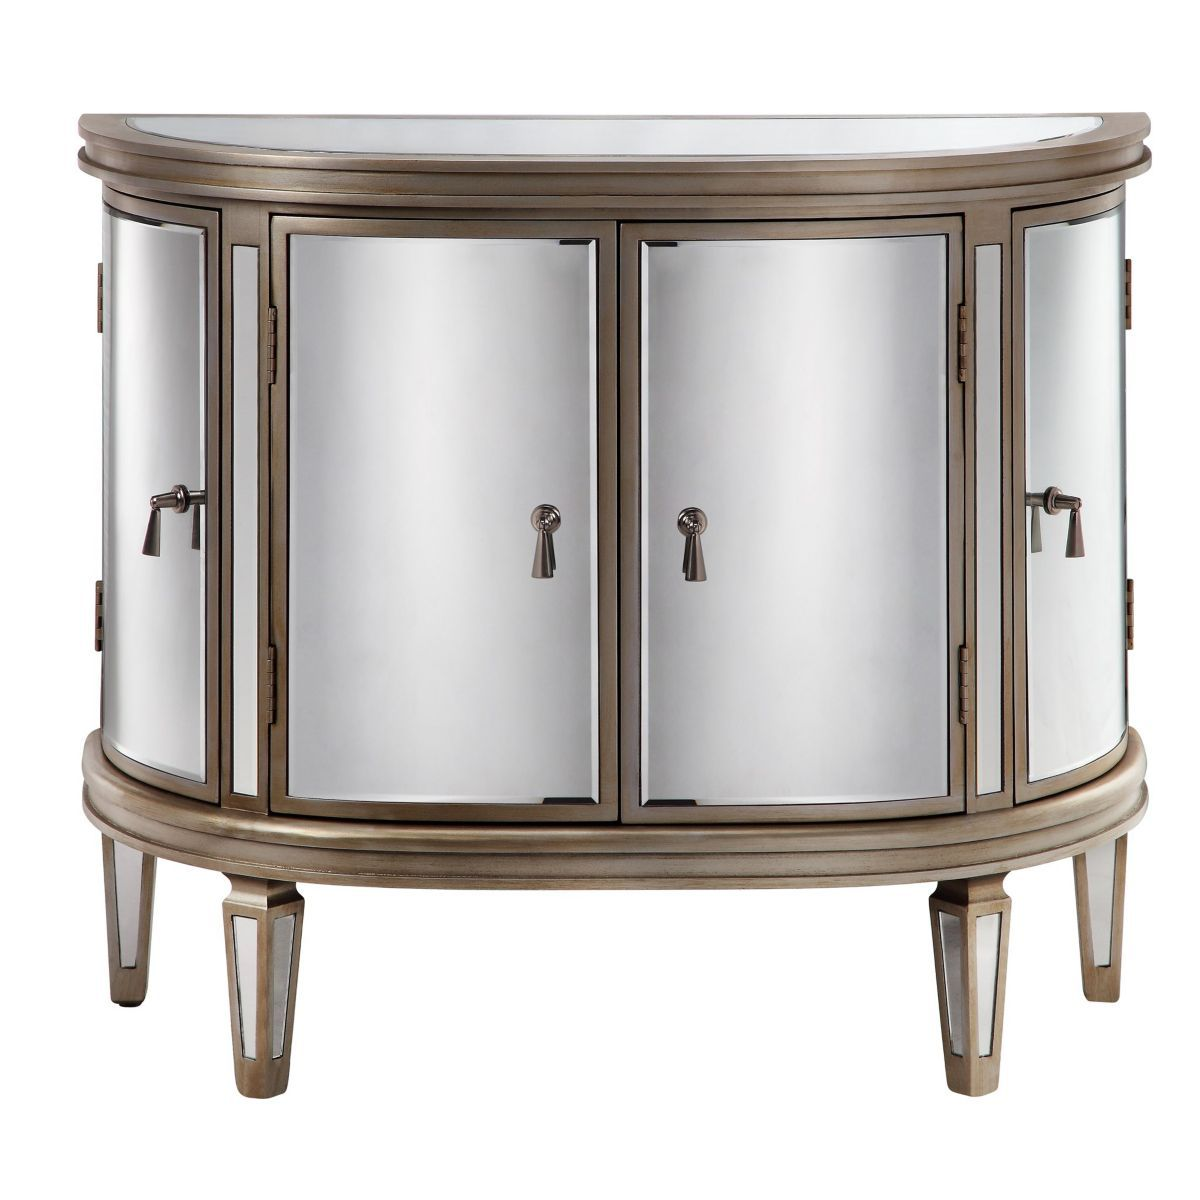 Directbuy Inc Accent Doors Accent Cabinet Mirrored Accent Table